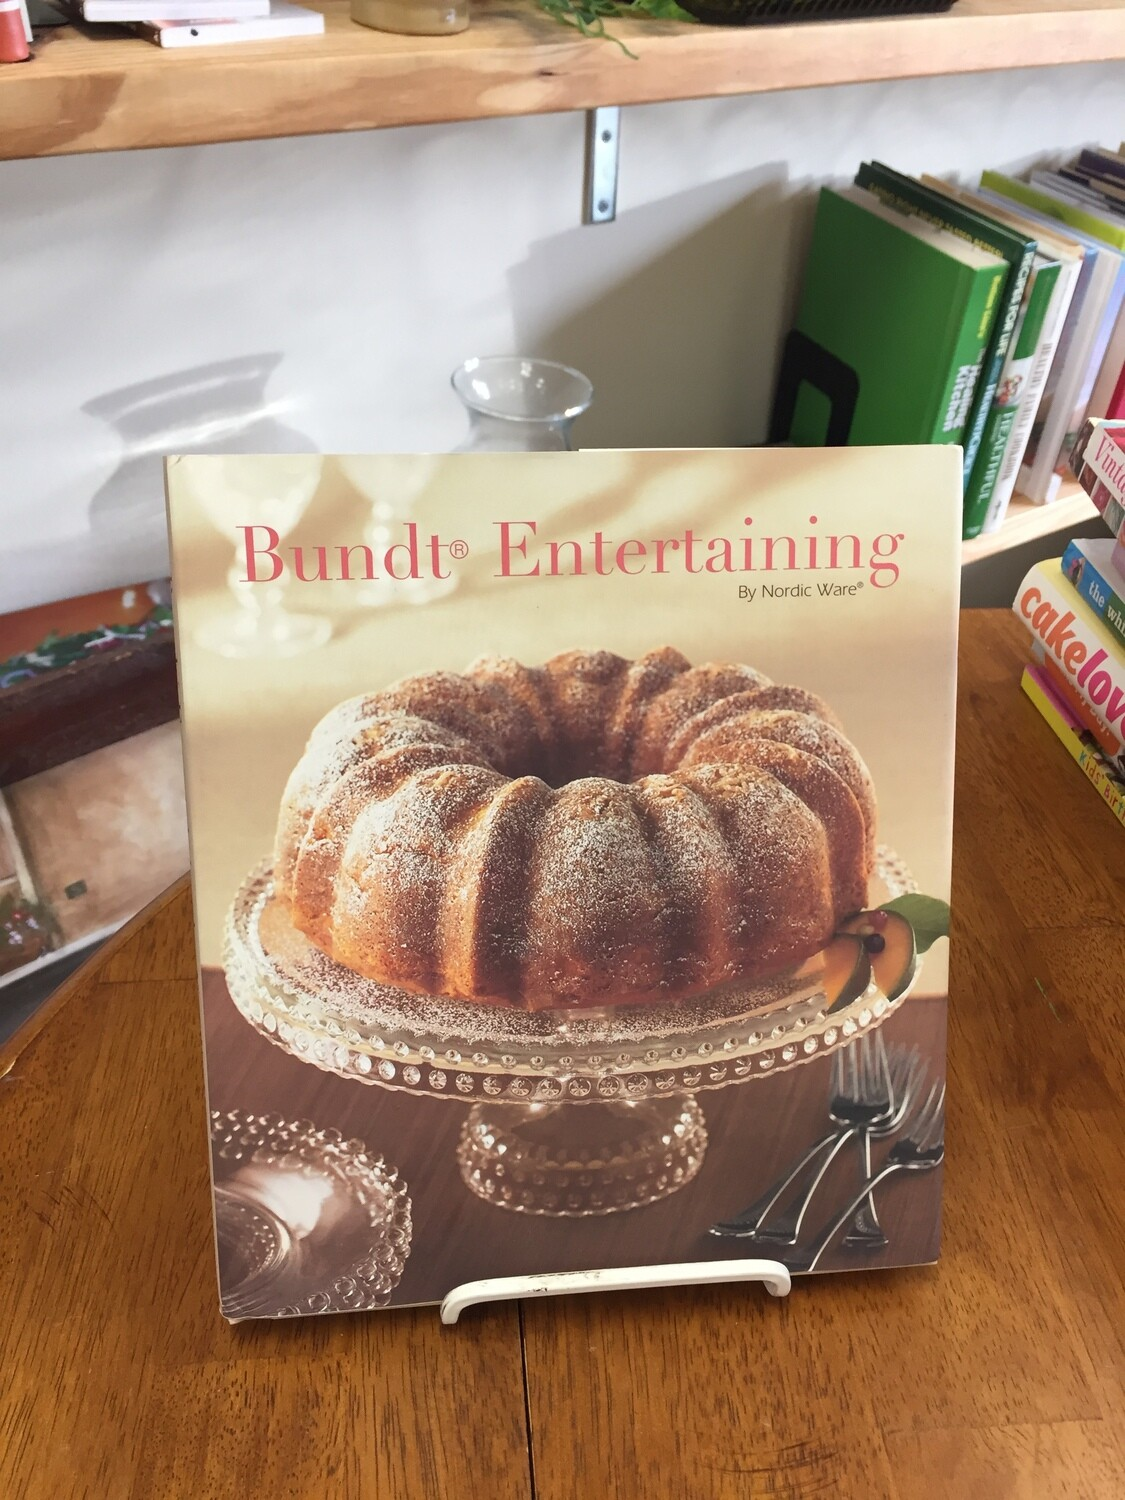 Bundt Entertaining